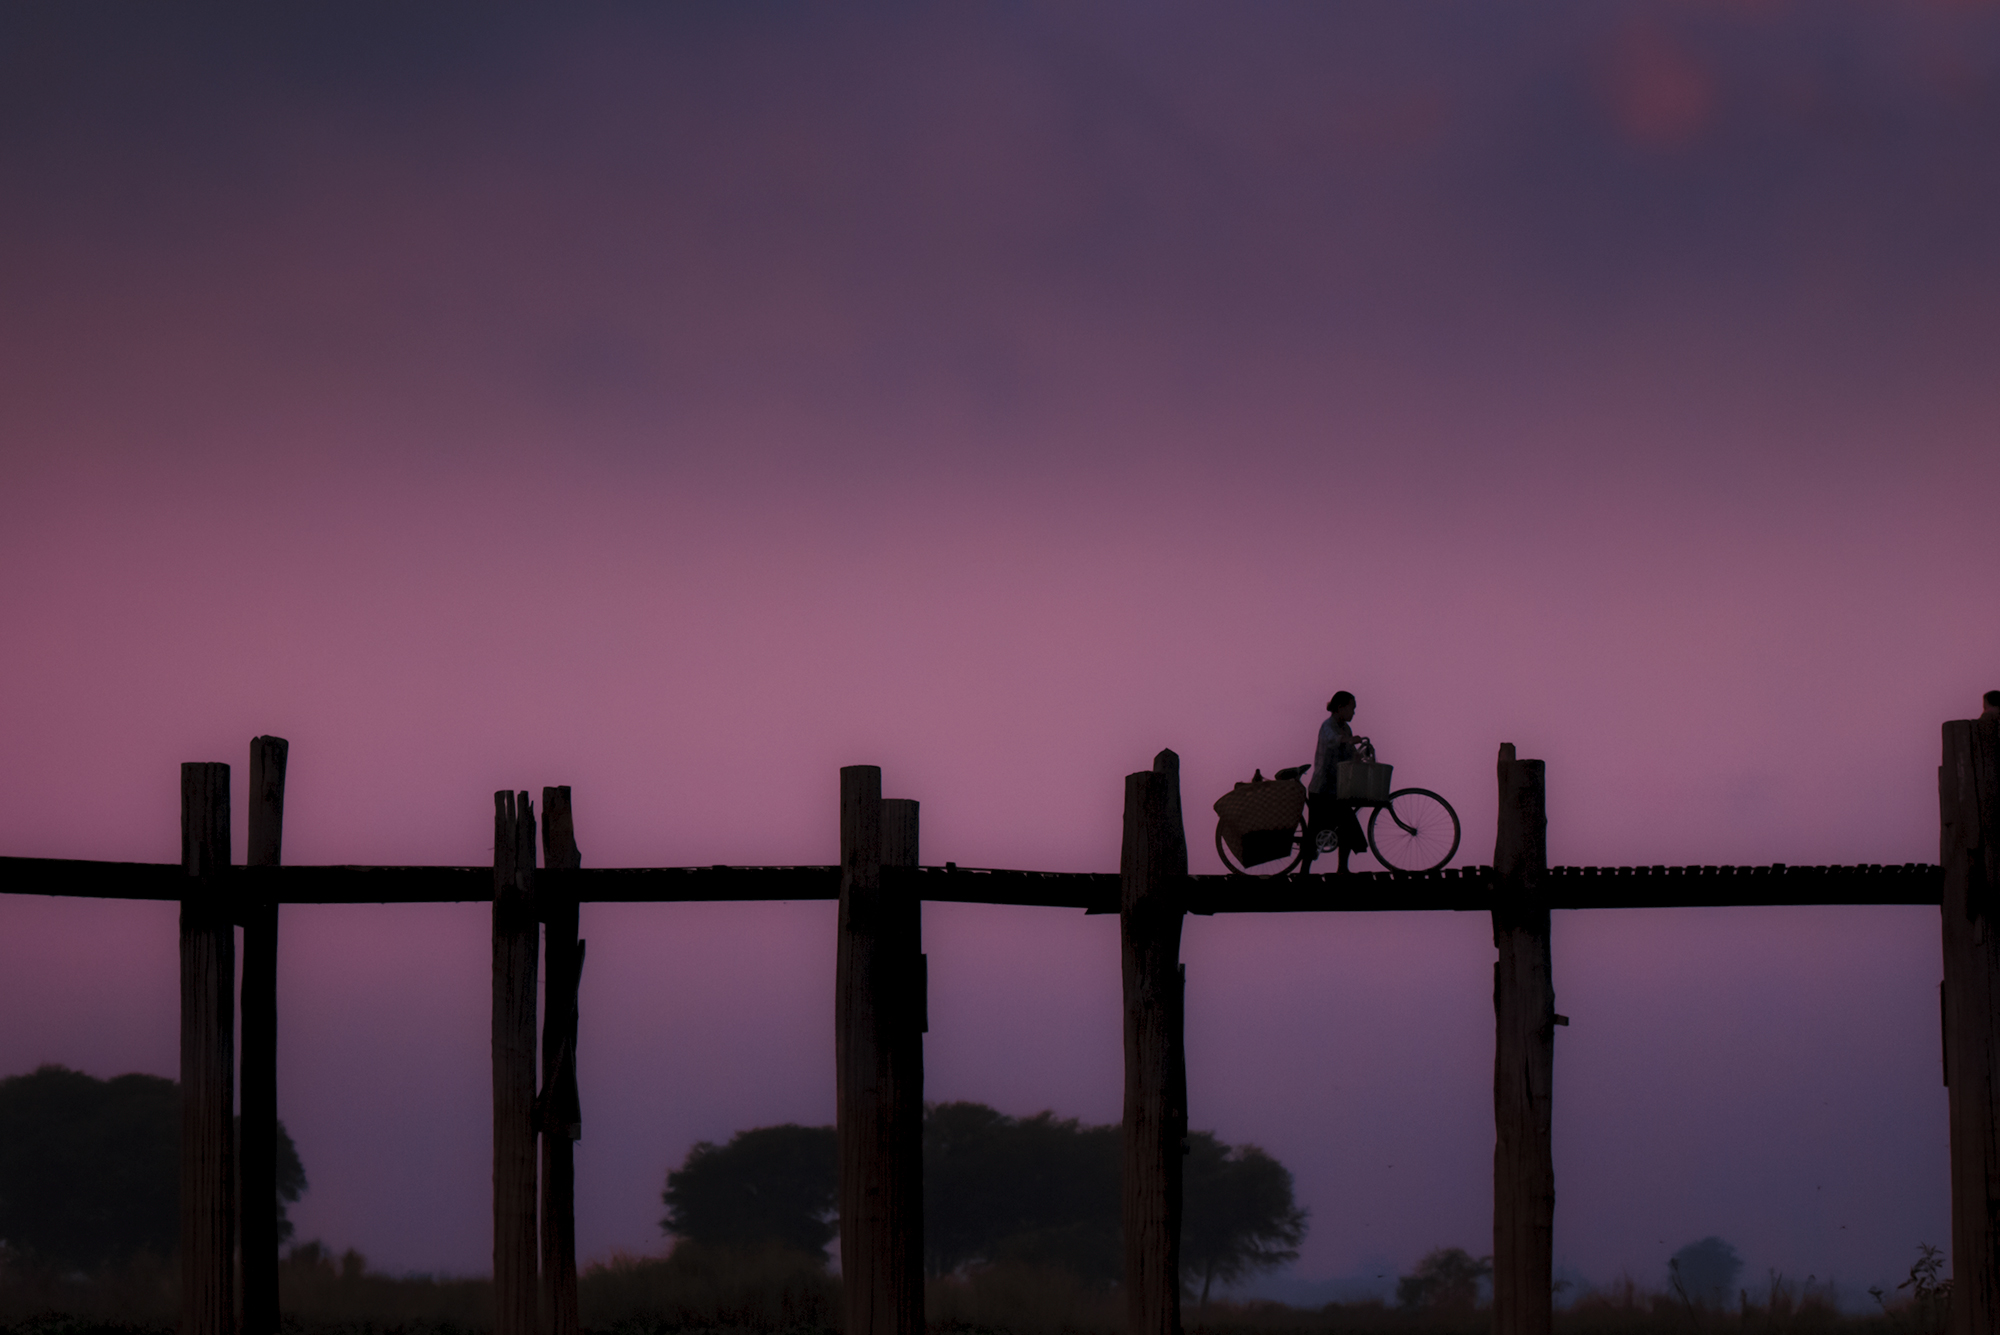 A woman  walks her bike across U Bein's Bridge at sunrise, carrying her goods to market.